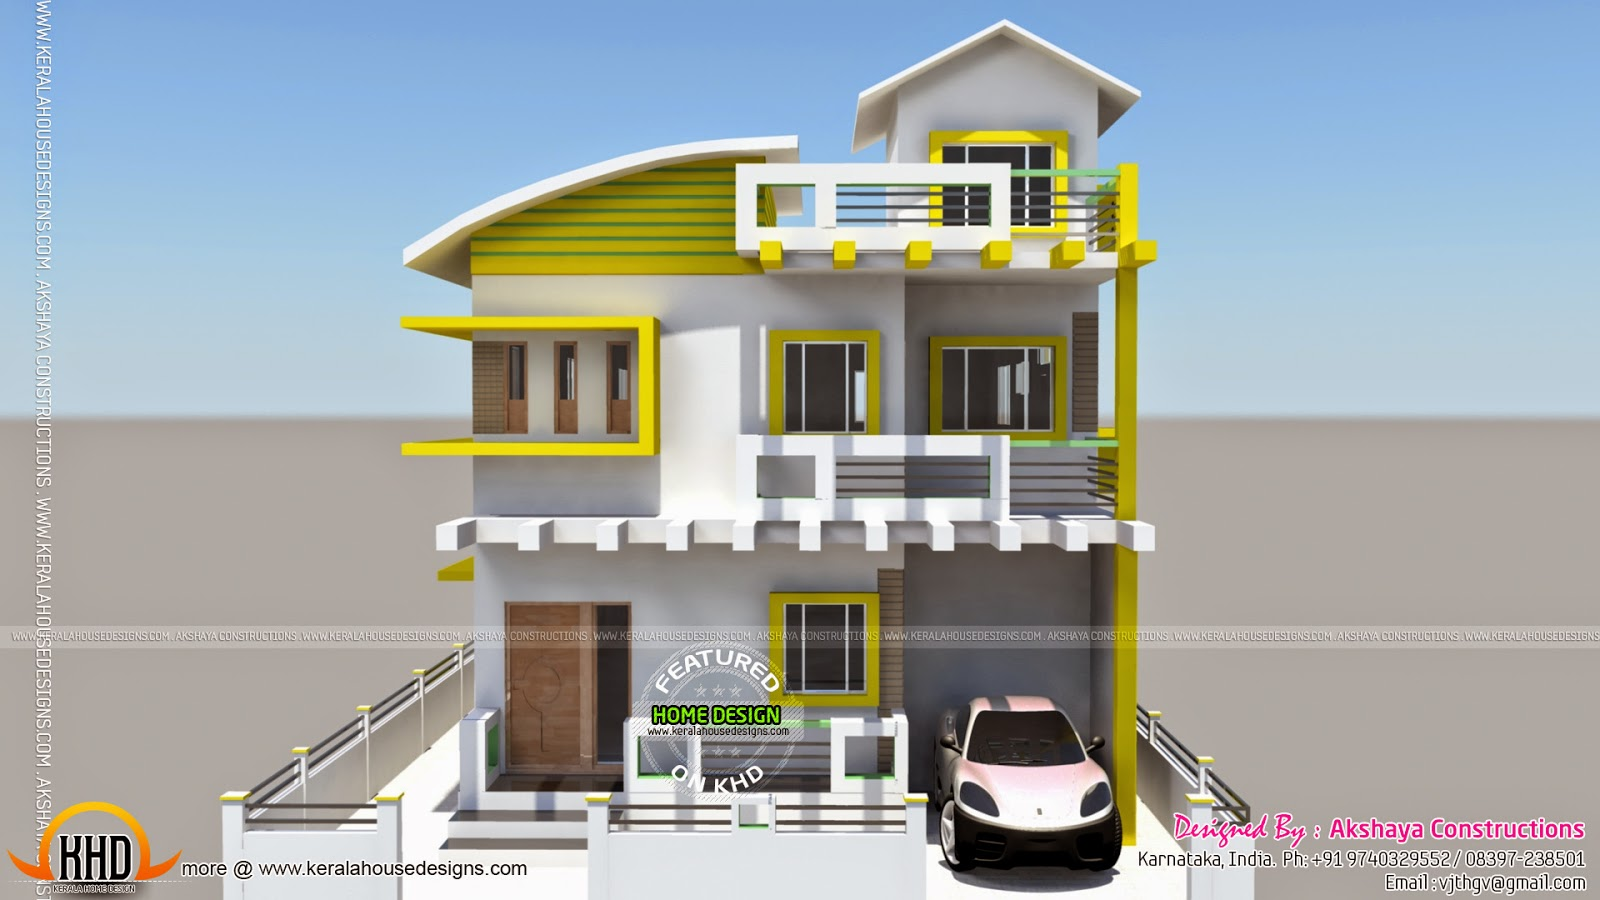 Karnataka home design kerala home design and floor plans for Designer in the house